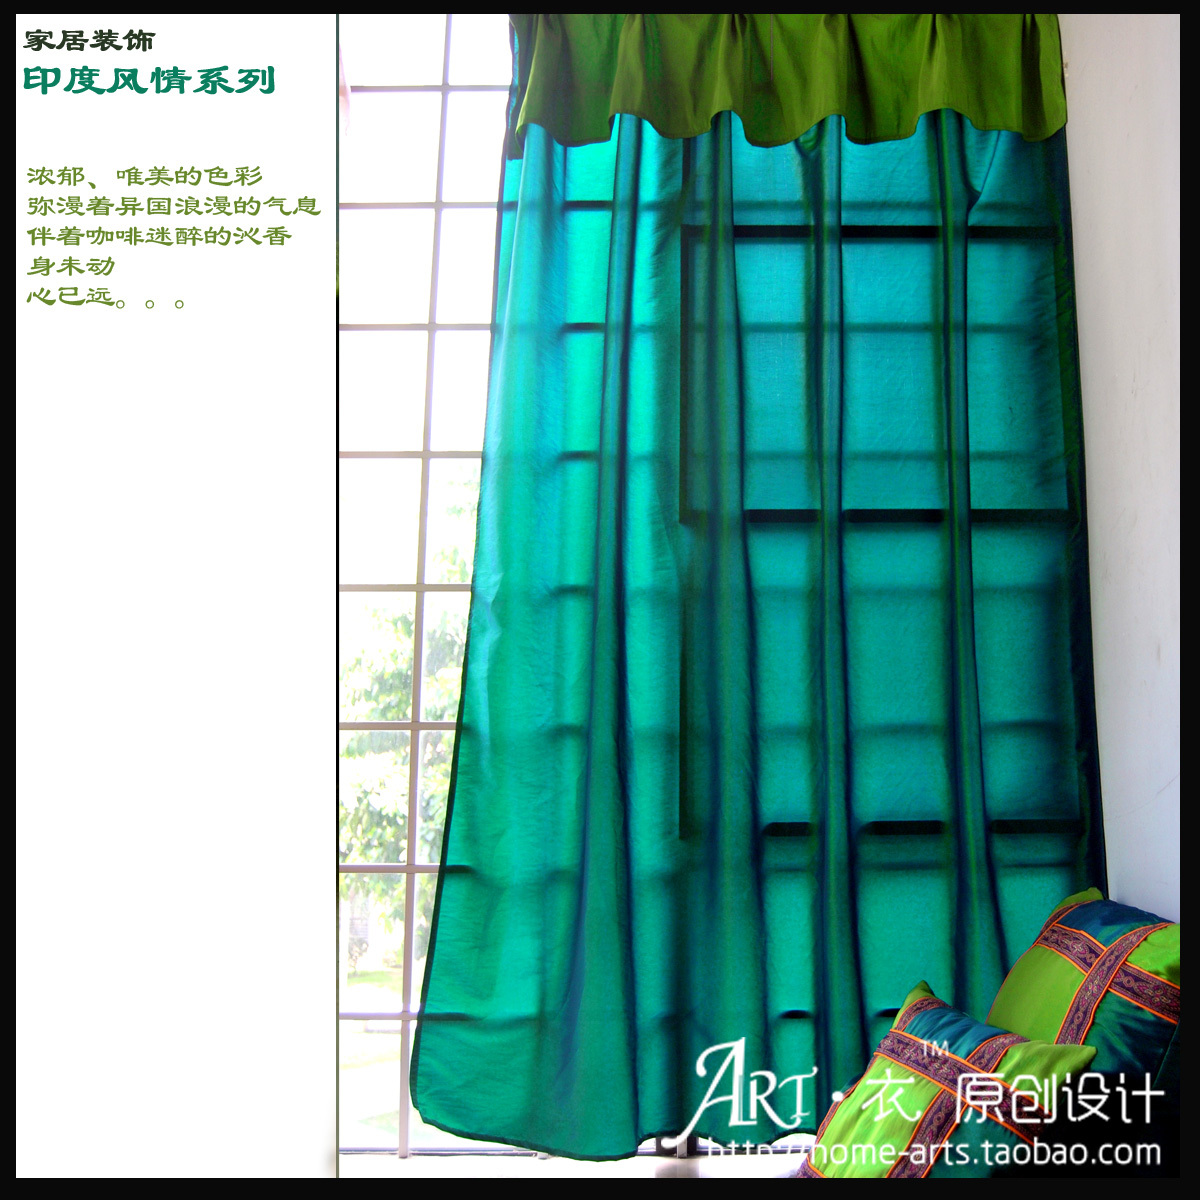 Piaochuang curtain customize dodechedron blackish green pure color cloth curtain